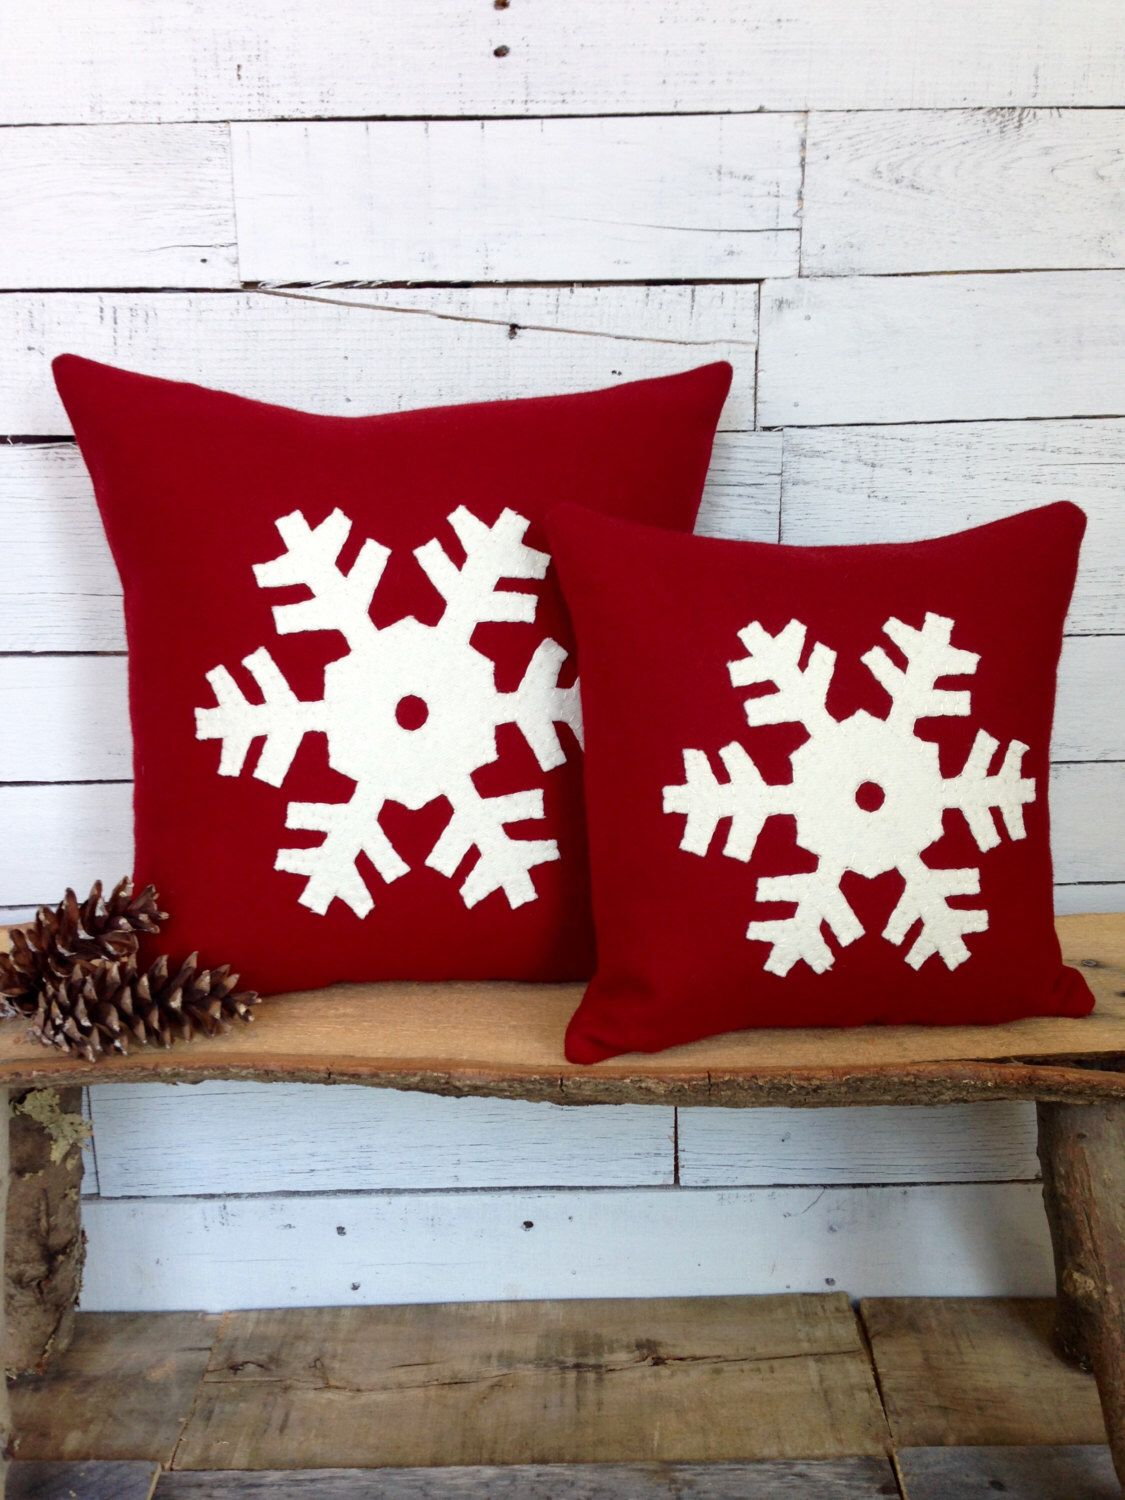 Rustic Home Decor, Rustic Pillows, Decorative Pillow, Throw Pillow, Ski Lodge Decor, Snowflake Decorations, Snowflake, Woodland Decor by AwayUpNorth on Etsy https://www.etsy.com/listing/88806568/rustic-home-decor-rustic-pillows